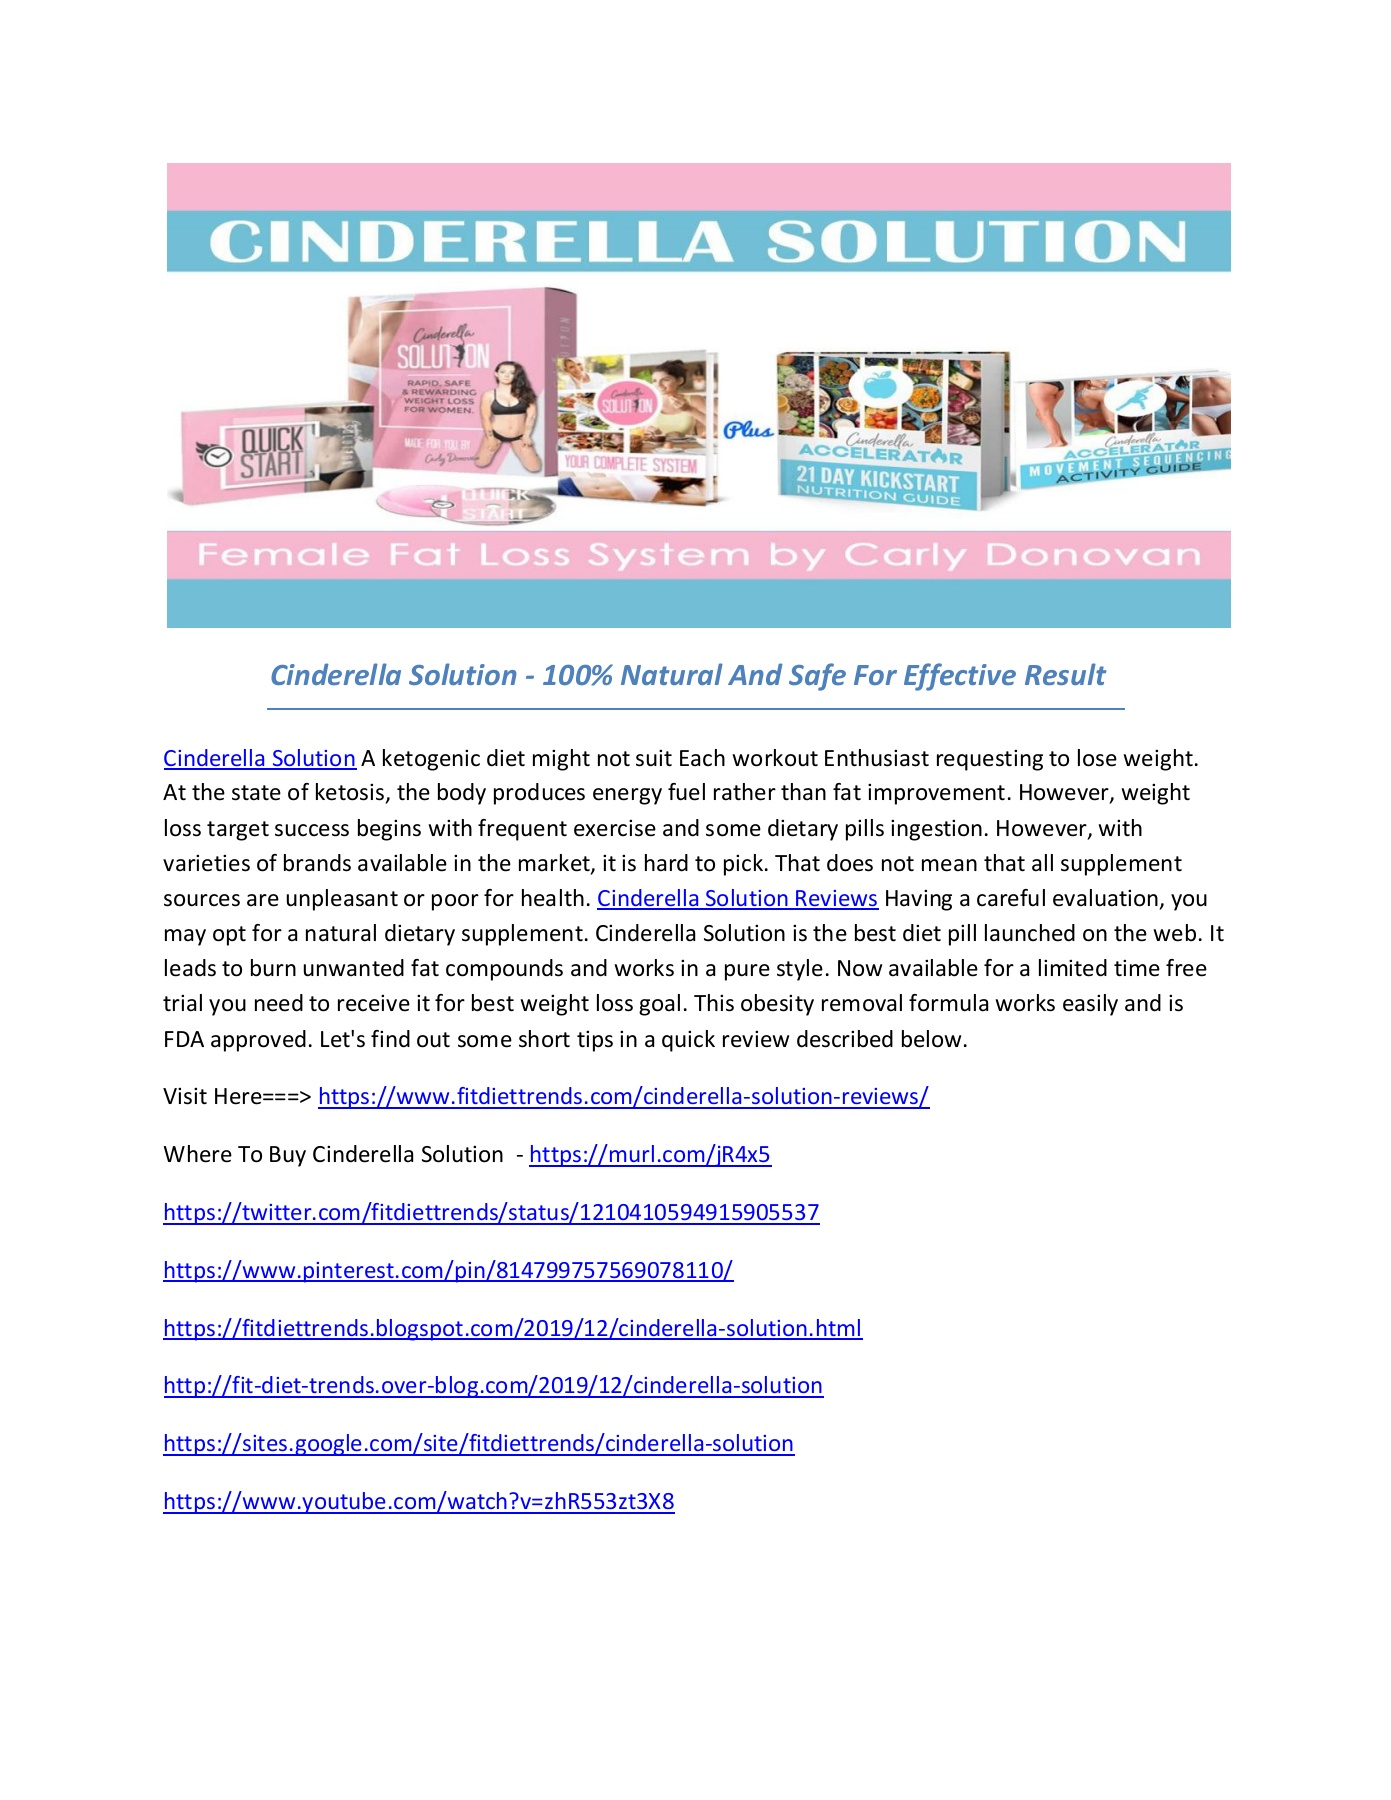 Is There An Alternative To Cinderella Solution 2020